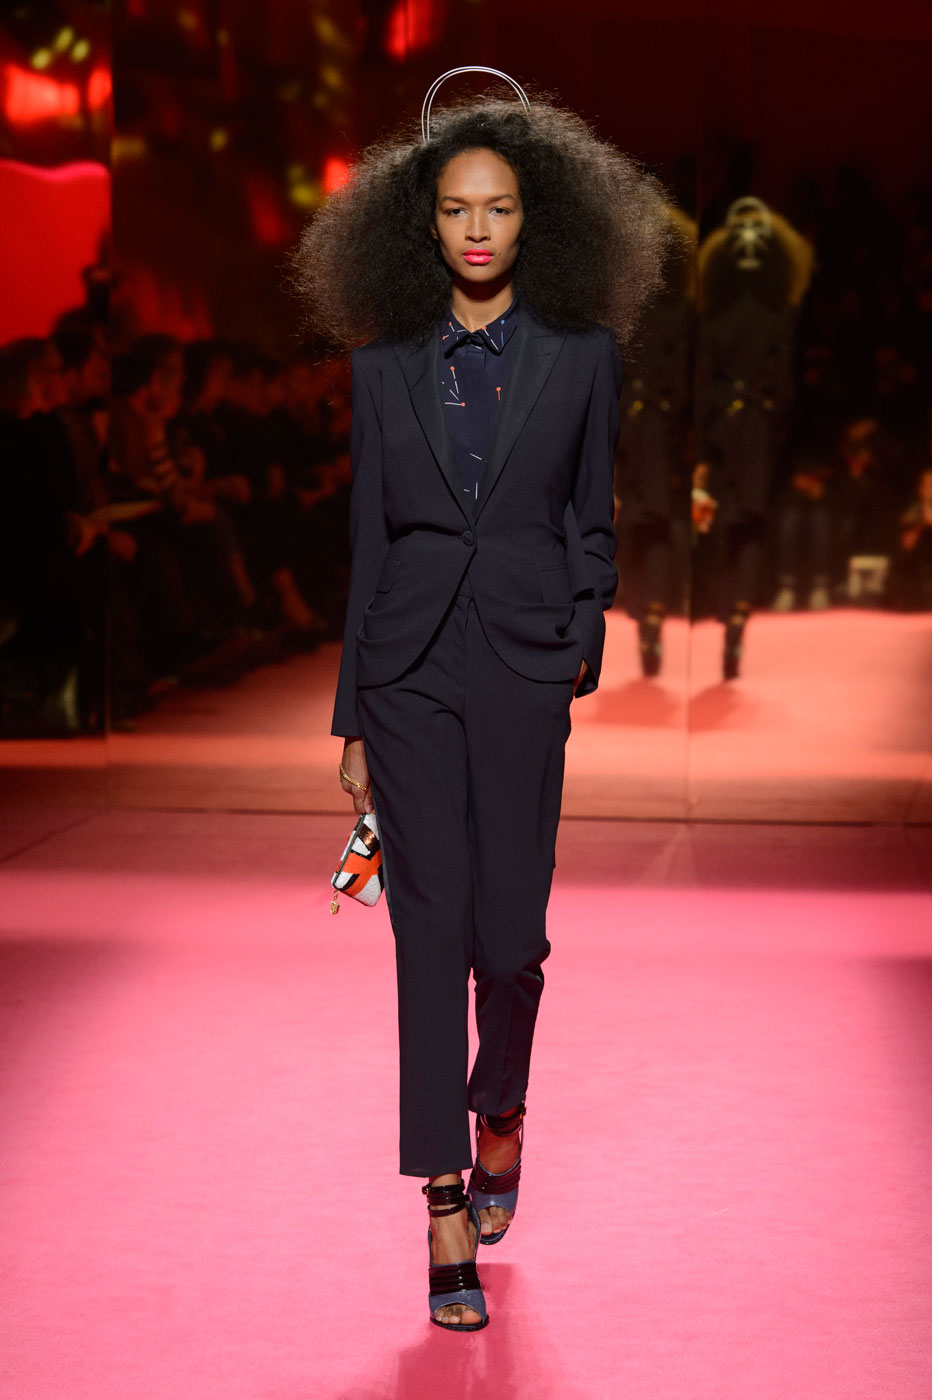 Schiaparelli-fashion-runway-show-haute-couture-paris-spring-summer-2015-the-impression-23